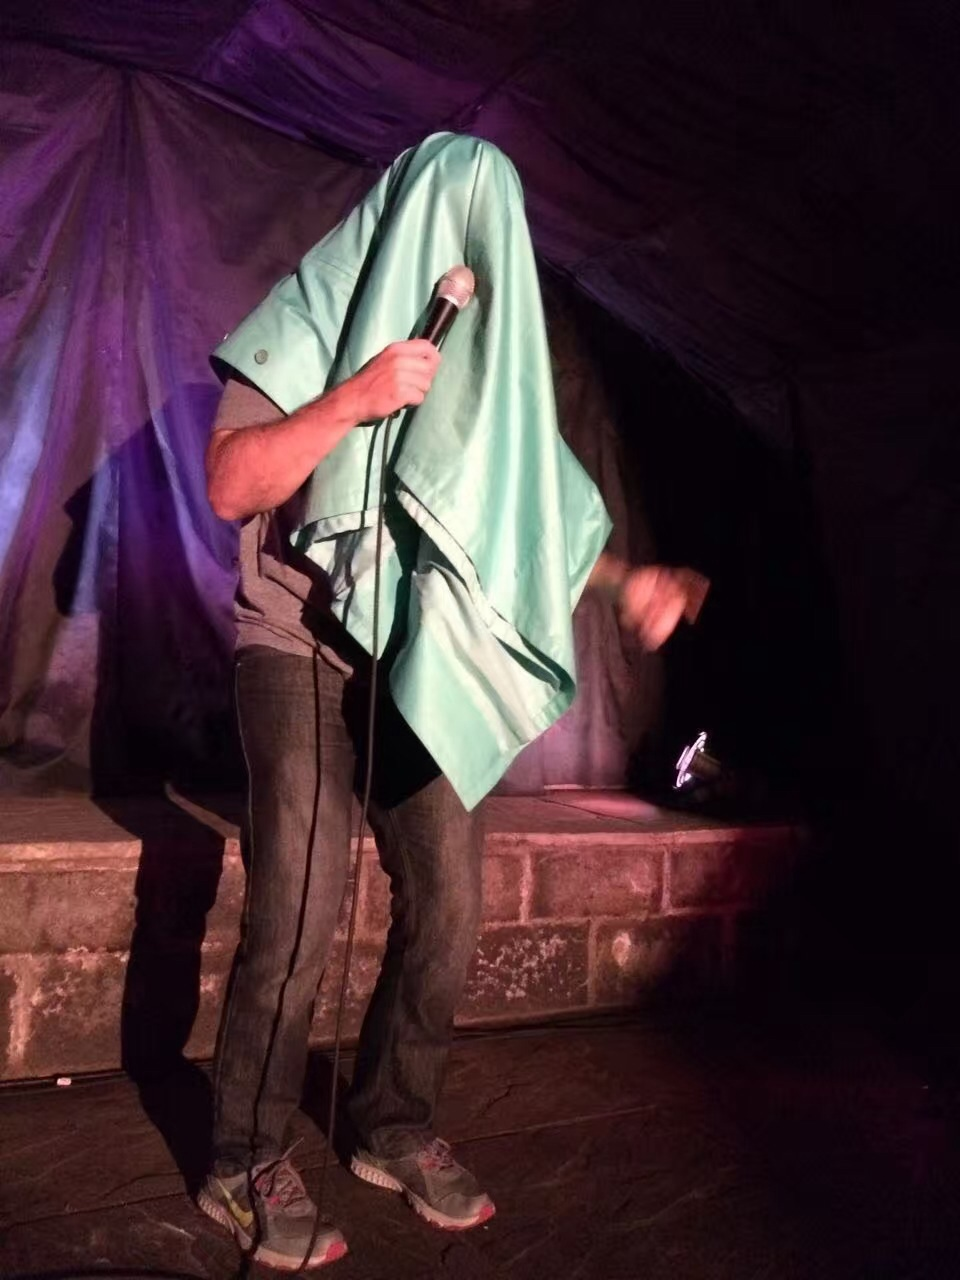 Performing under a blanket - i.e. the Holy Grail of 'opening phase' comedy